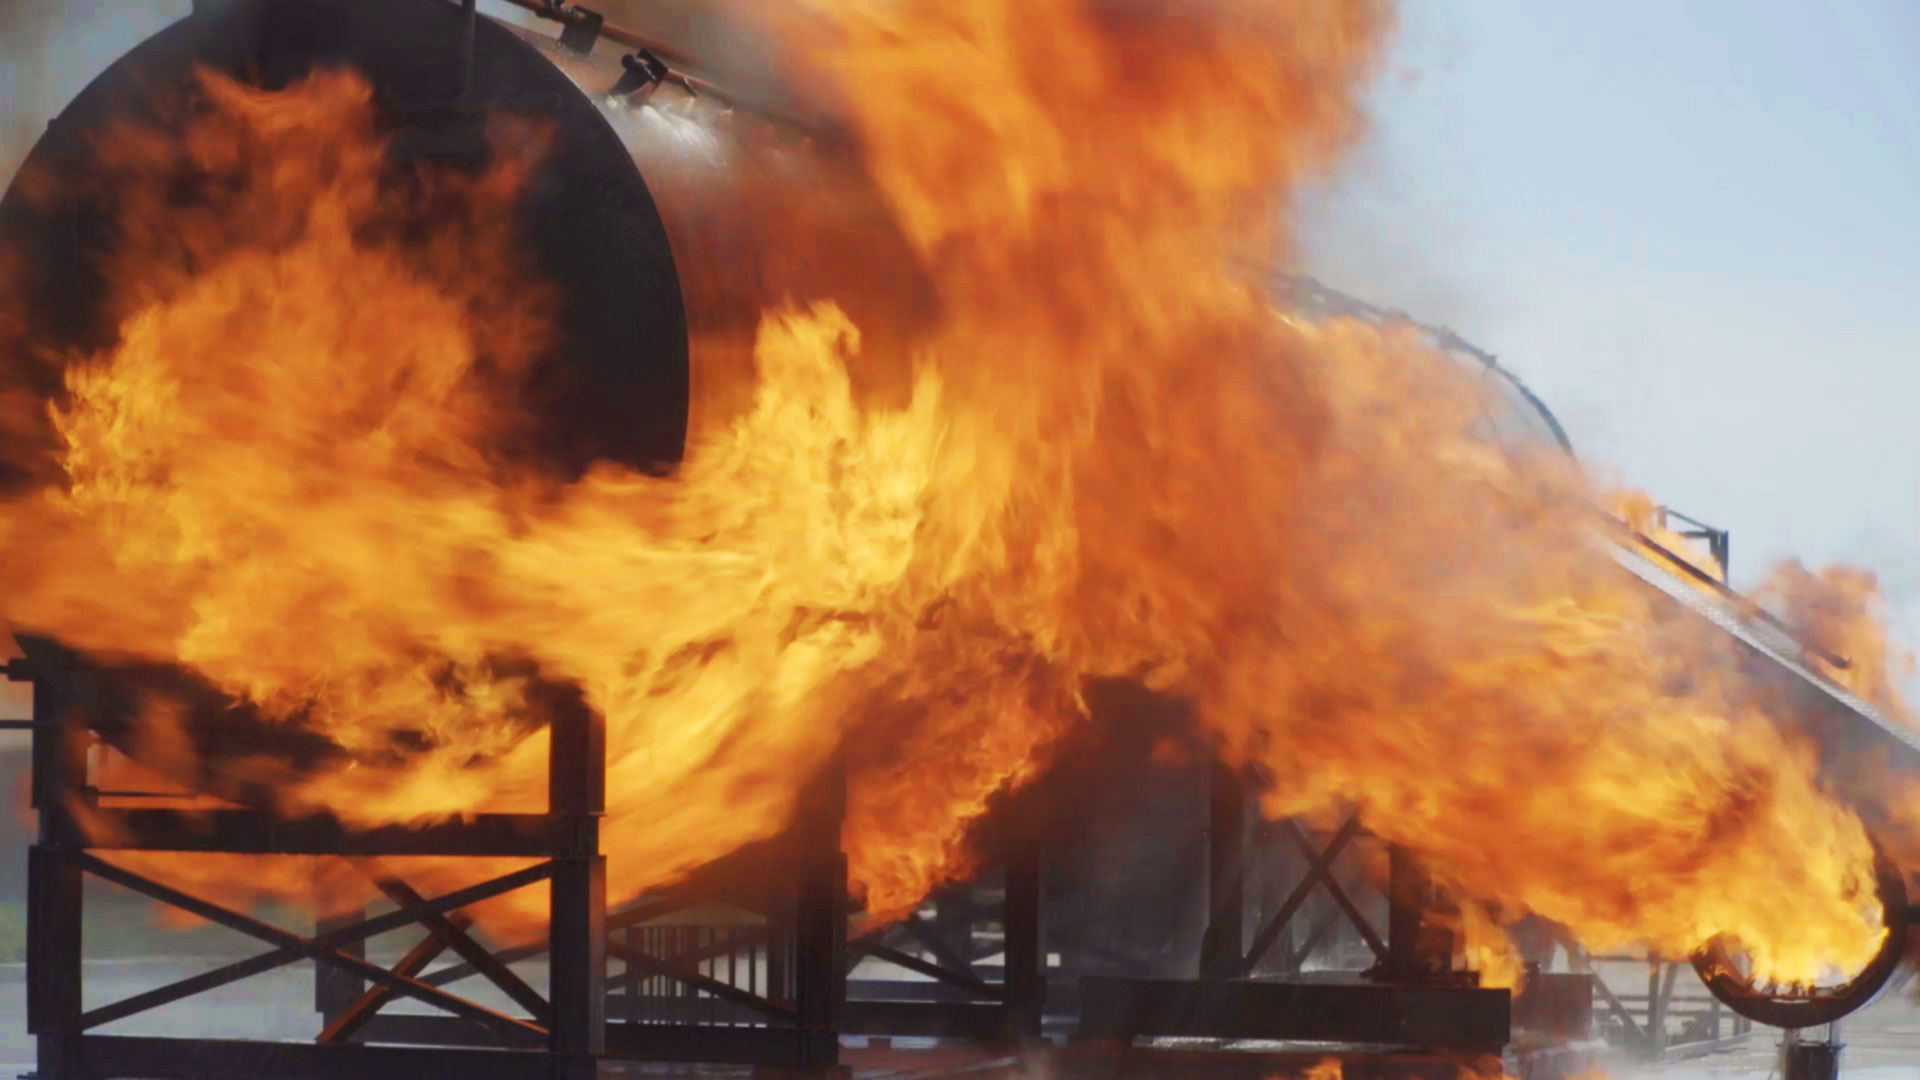 A dramatic fire simulation at BAE Systems fire training centre